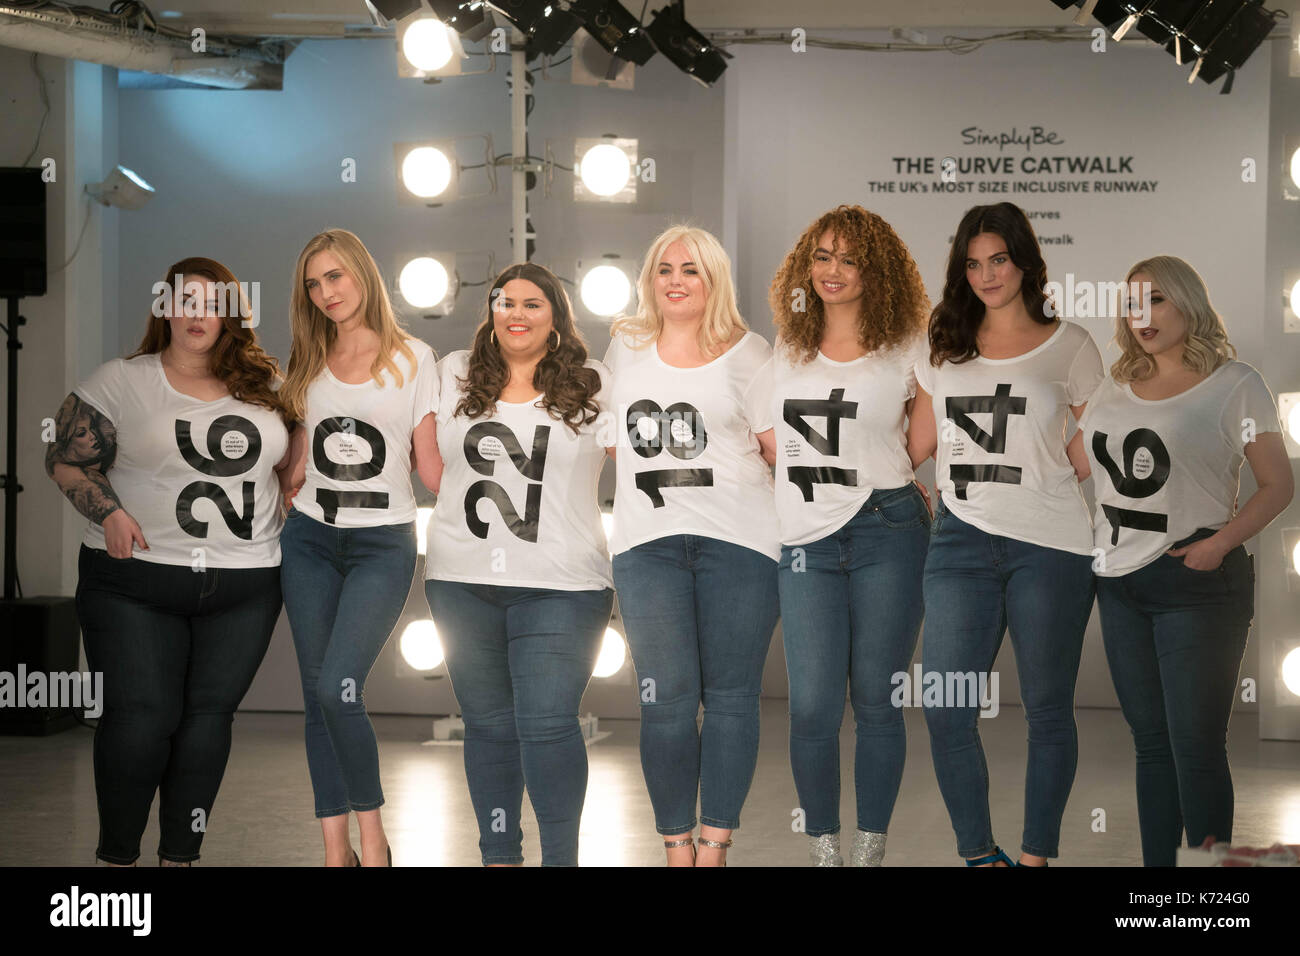 London, UK. 14th Sep, 2017. Models (left to right) Tess Holliday, Kelly Knox, Callie Thorpe, Felicity Hayward, Sonny, Ali Tate and Hayley Hasselhof wearing tee shirts with their sizes on at a photo call for the Curve Catwalk, a fashion show celebrating diversity of body shapes and forms, at The Vinyl Factory as part of London Fashion Week in London. Photo date: Thursday, September 14, 2017. Photo credit should read Credit: Roger Garfield/Alamy Live News - Stock Image